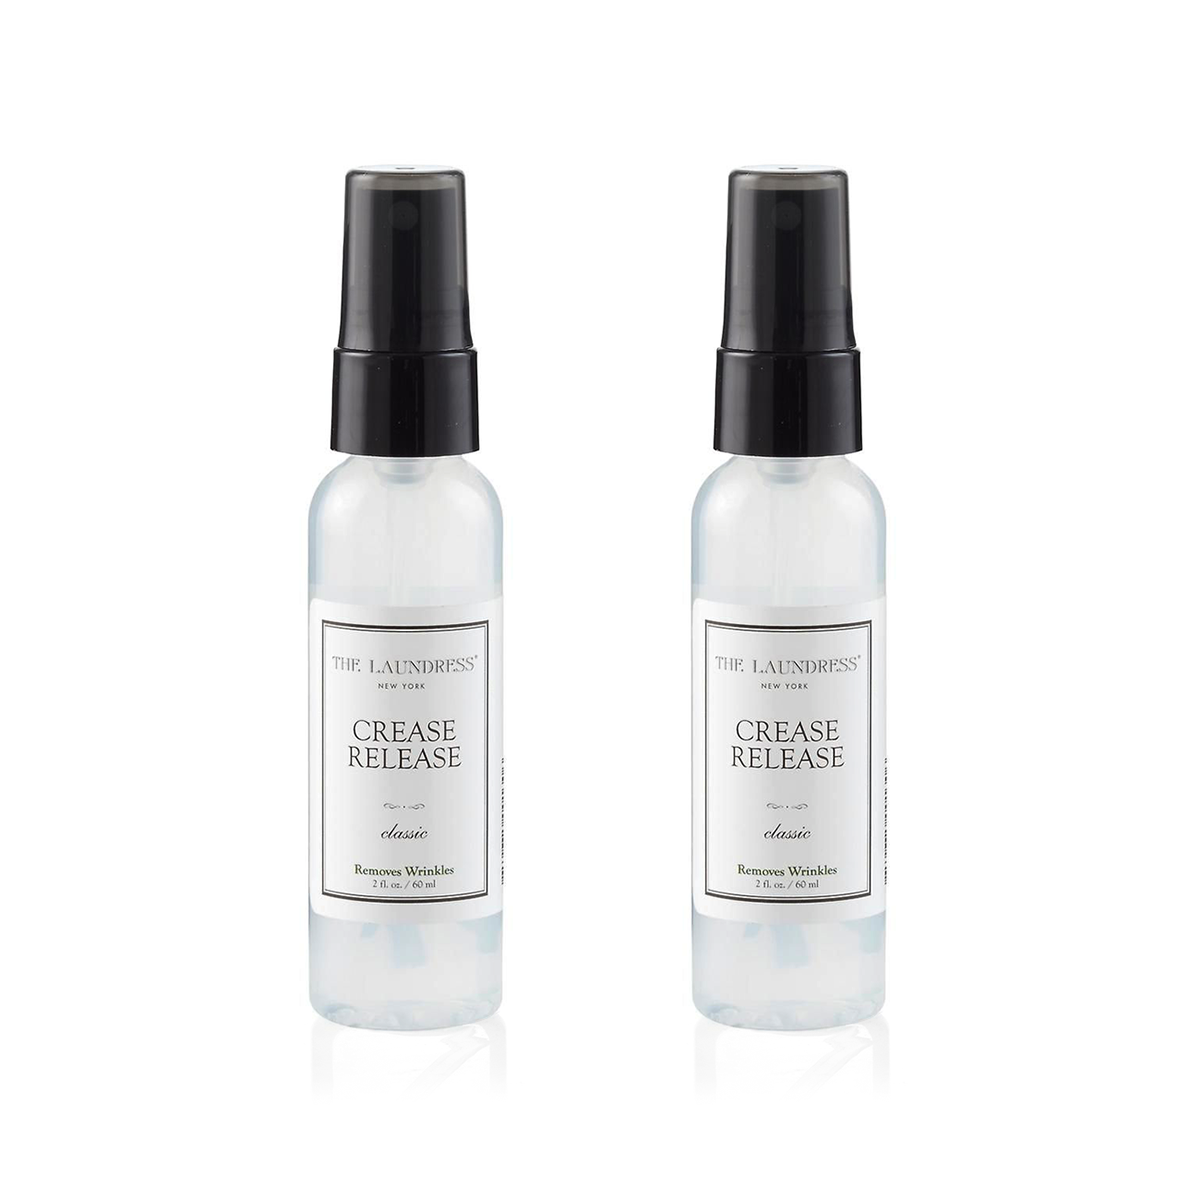 The Laundress Fabric Care, Crease Release Spray Classic 60ml 衣物保養系列 衣物除皺噴霧 兩瓶裝 套組 - Classic 香味款式